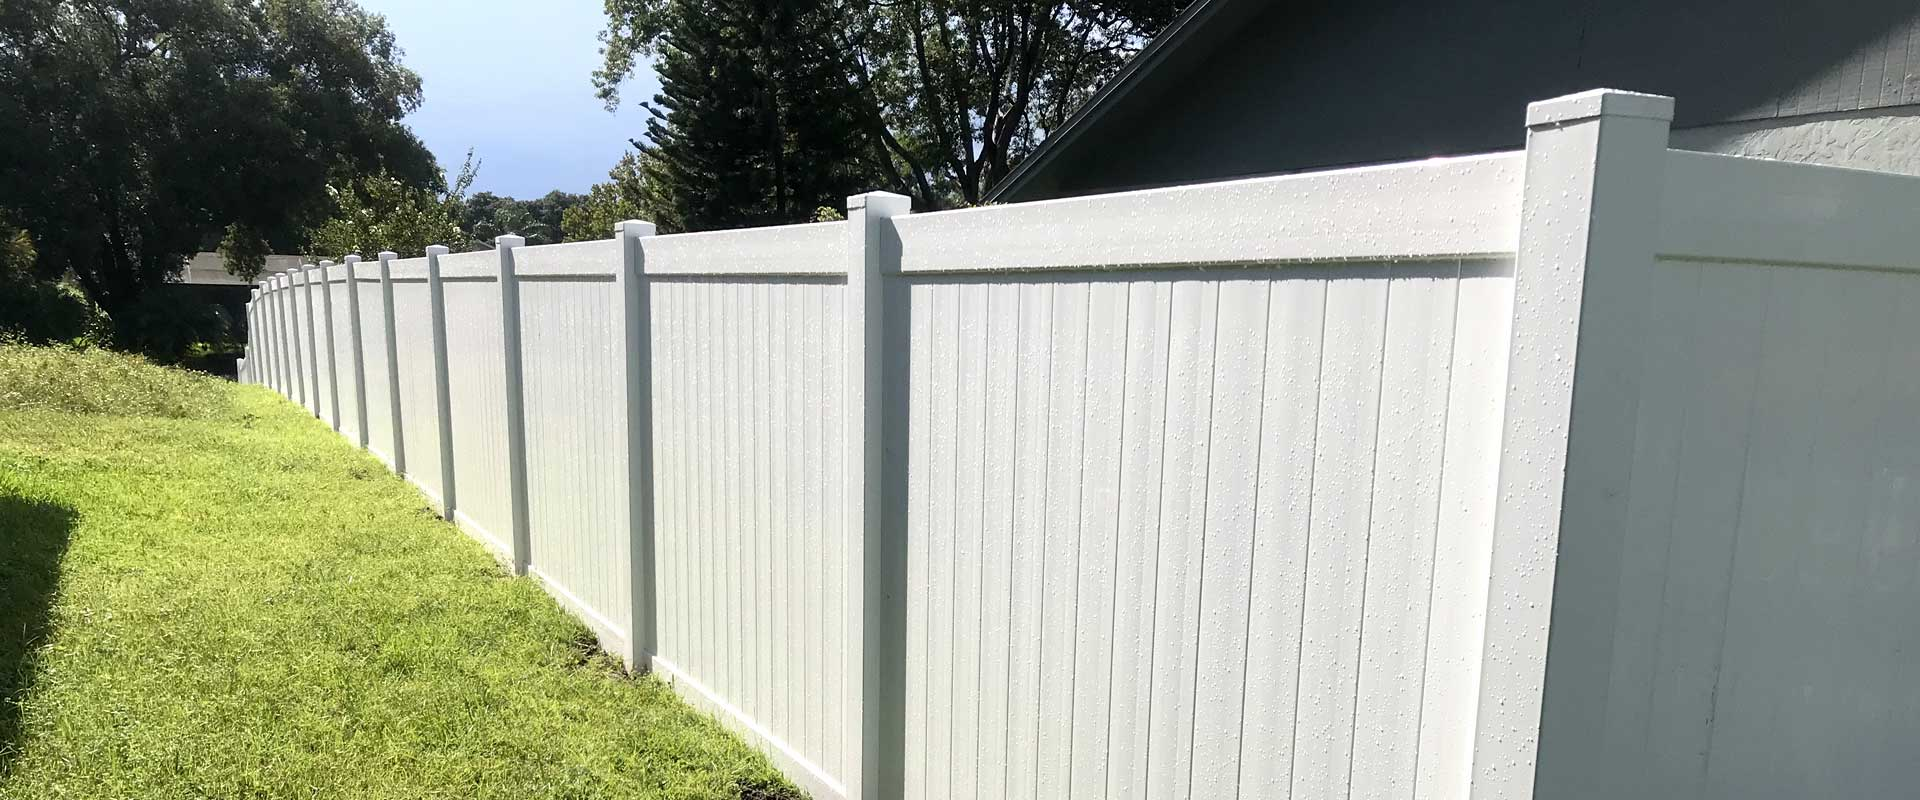 Fencing installation